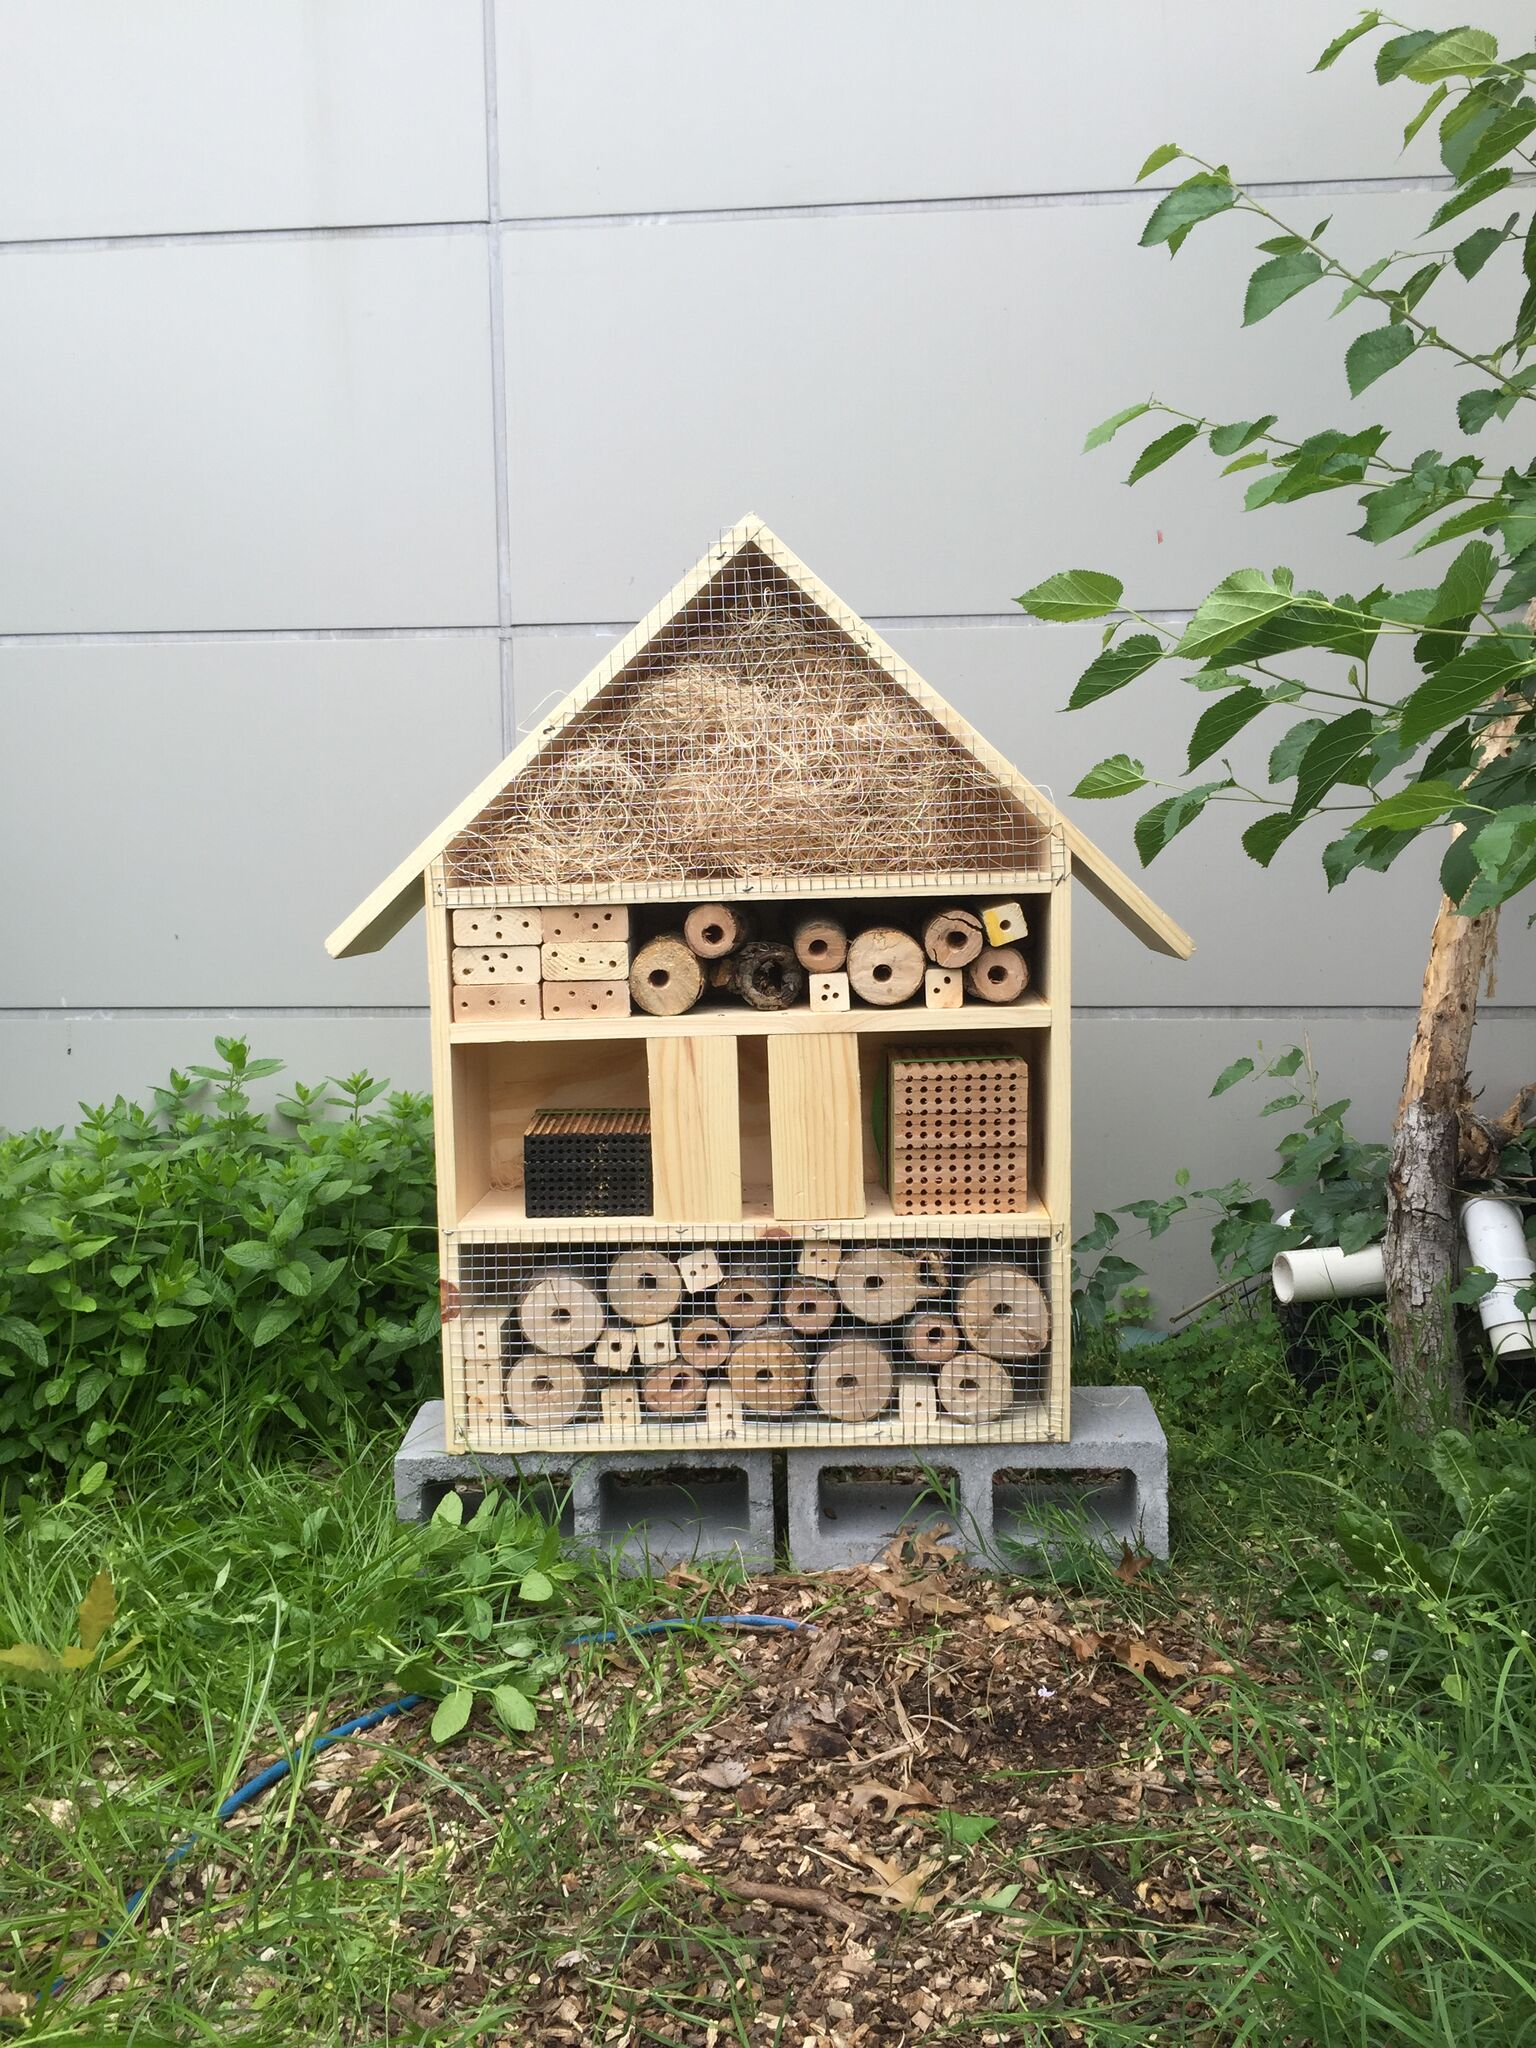 Build your own native bee house beyond pesticides for Build your home